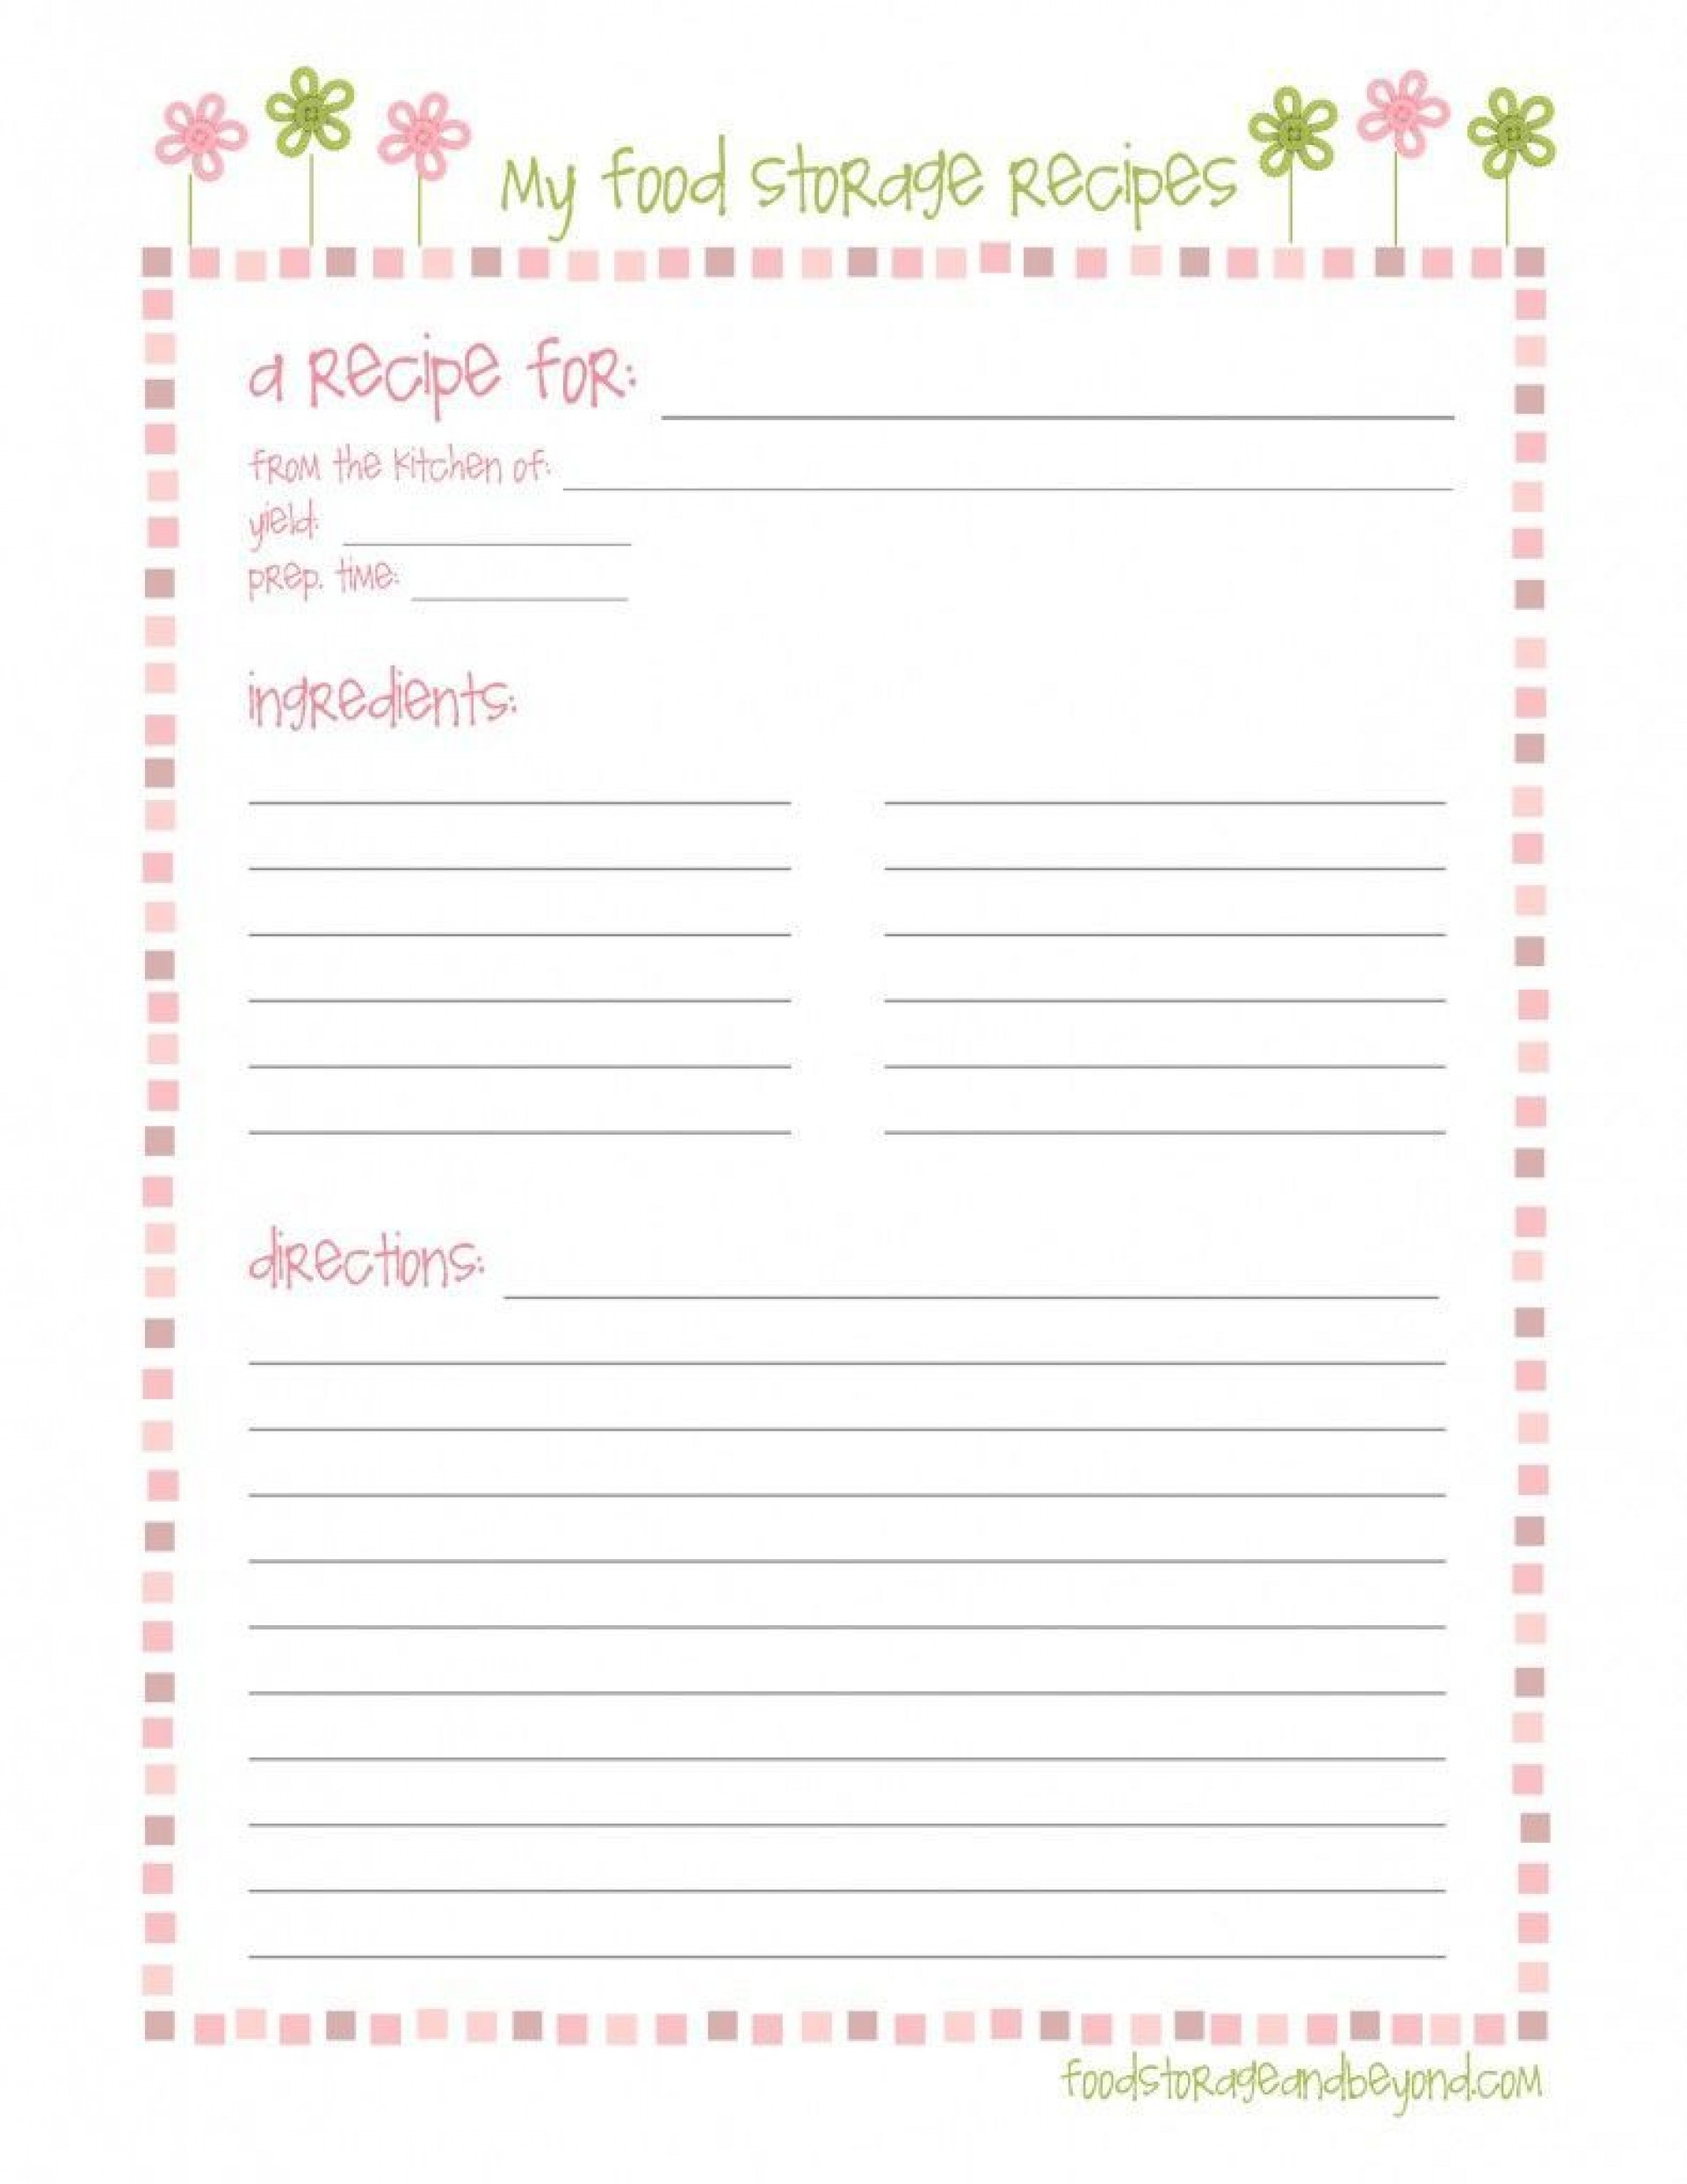 006 Formidable Free Recipe Template For Word Picture  Book Editable Card Microsoft 4x6 Page1920